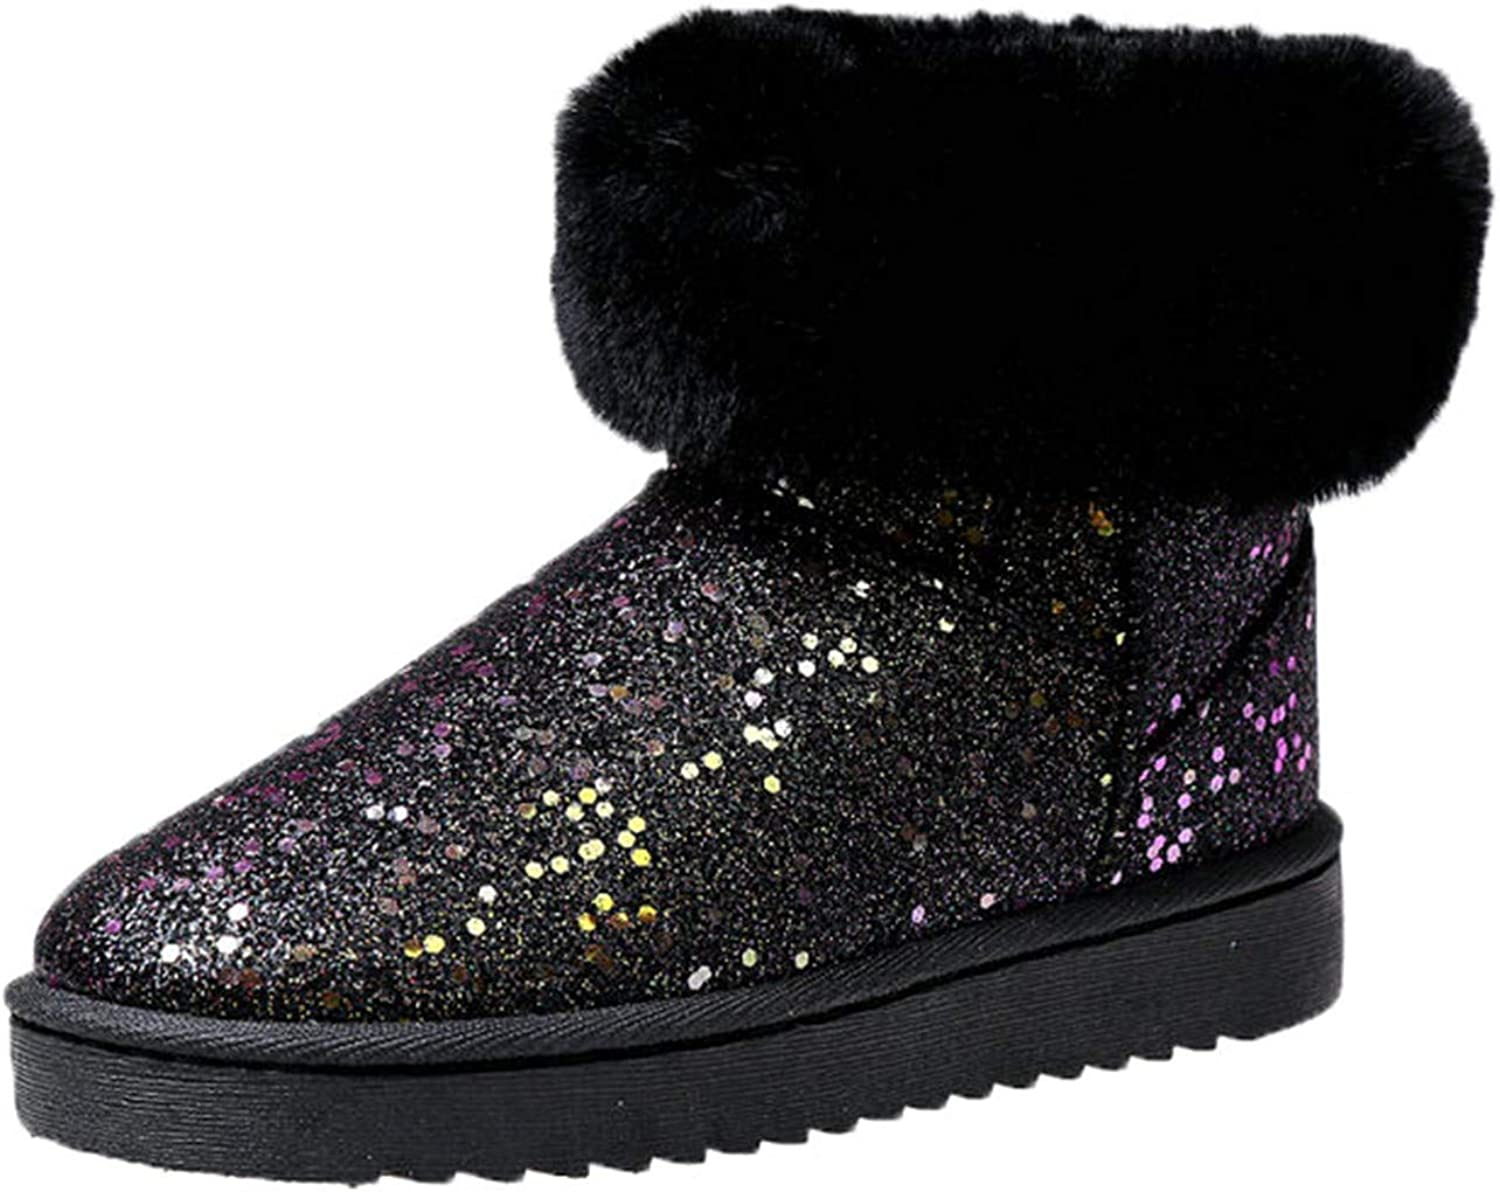 DATAIYANG Women Snow Boots Sequin Flash Cloth Warm Plush for Cold Winter Women's Boots Ladies Brand Wedge shoes